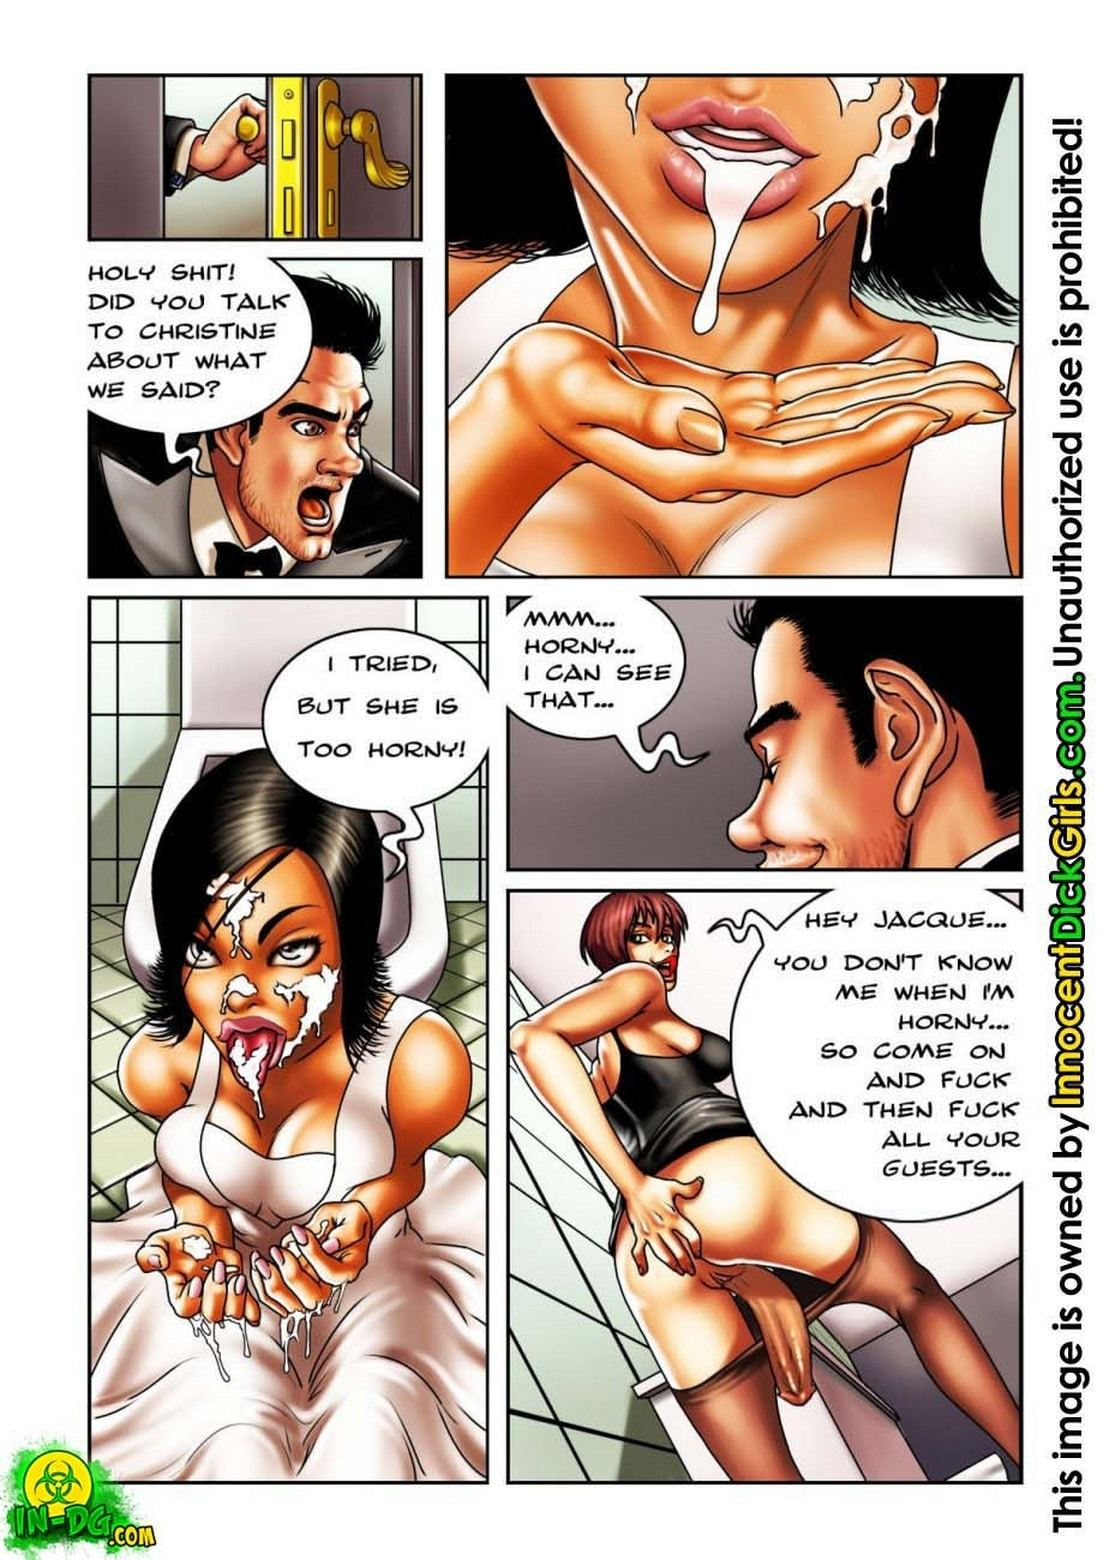 Apologise, free dick girl futa comics very